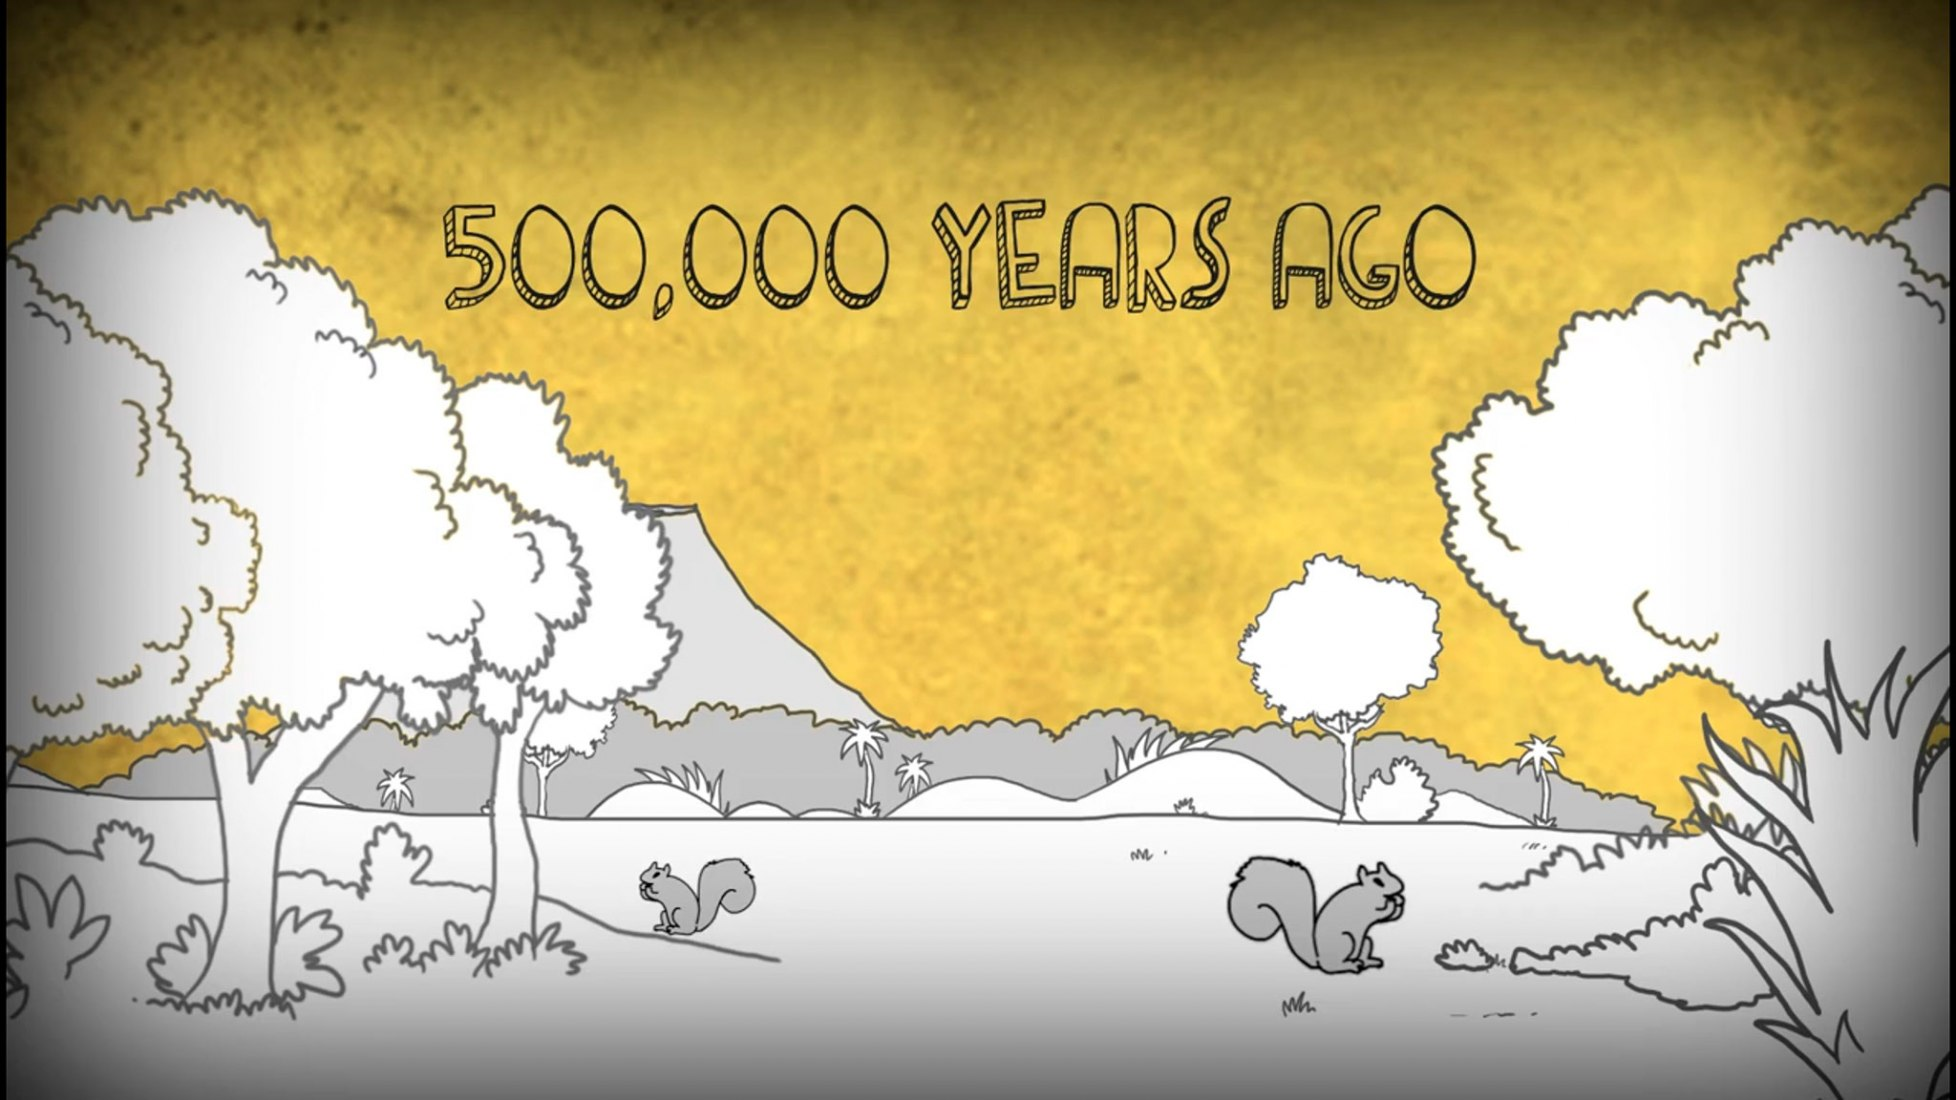 MAN. Animated story by Steve Cutts